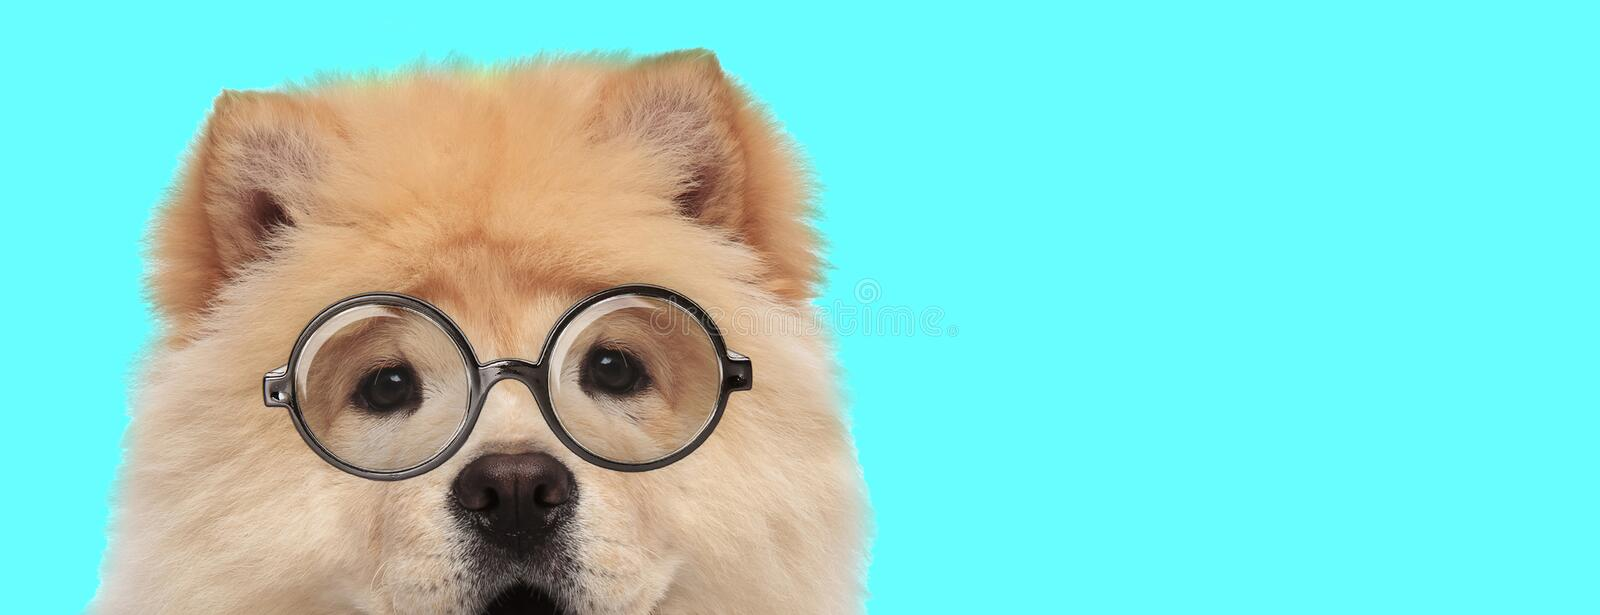 Adorable funny Chow Chow dog wearing eyeglasses stock photography